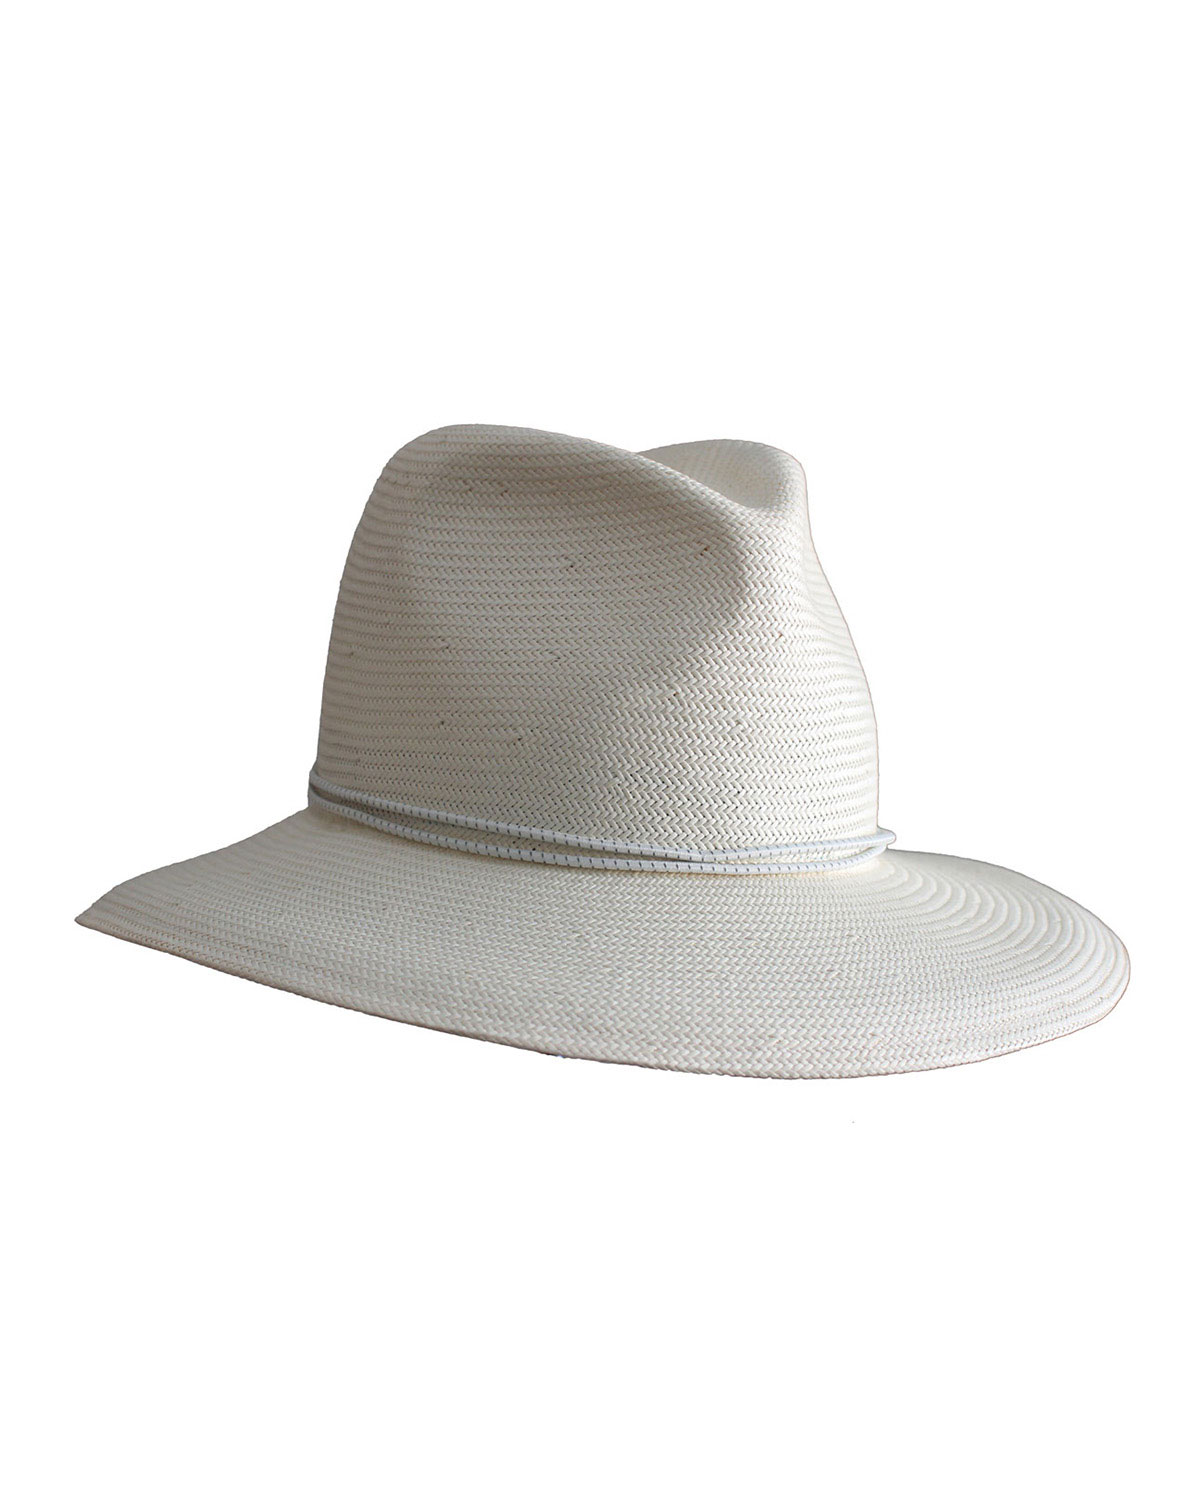 Yestadt Millinery Nomad Packable Straw Fedora Hat, Size: SMALL/MEDIUM, Ivory